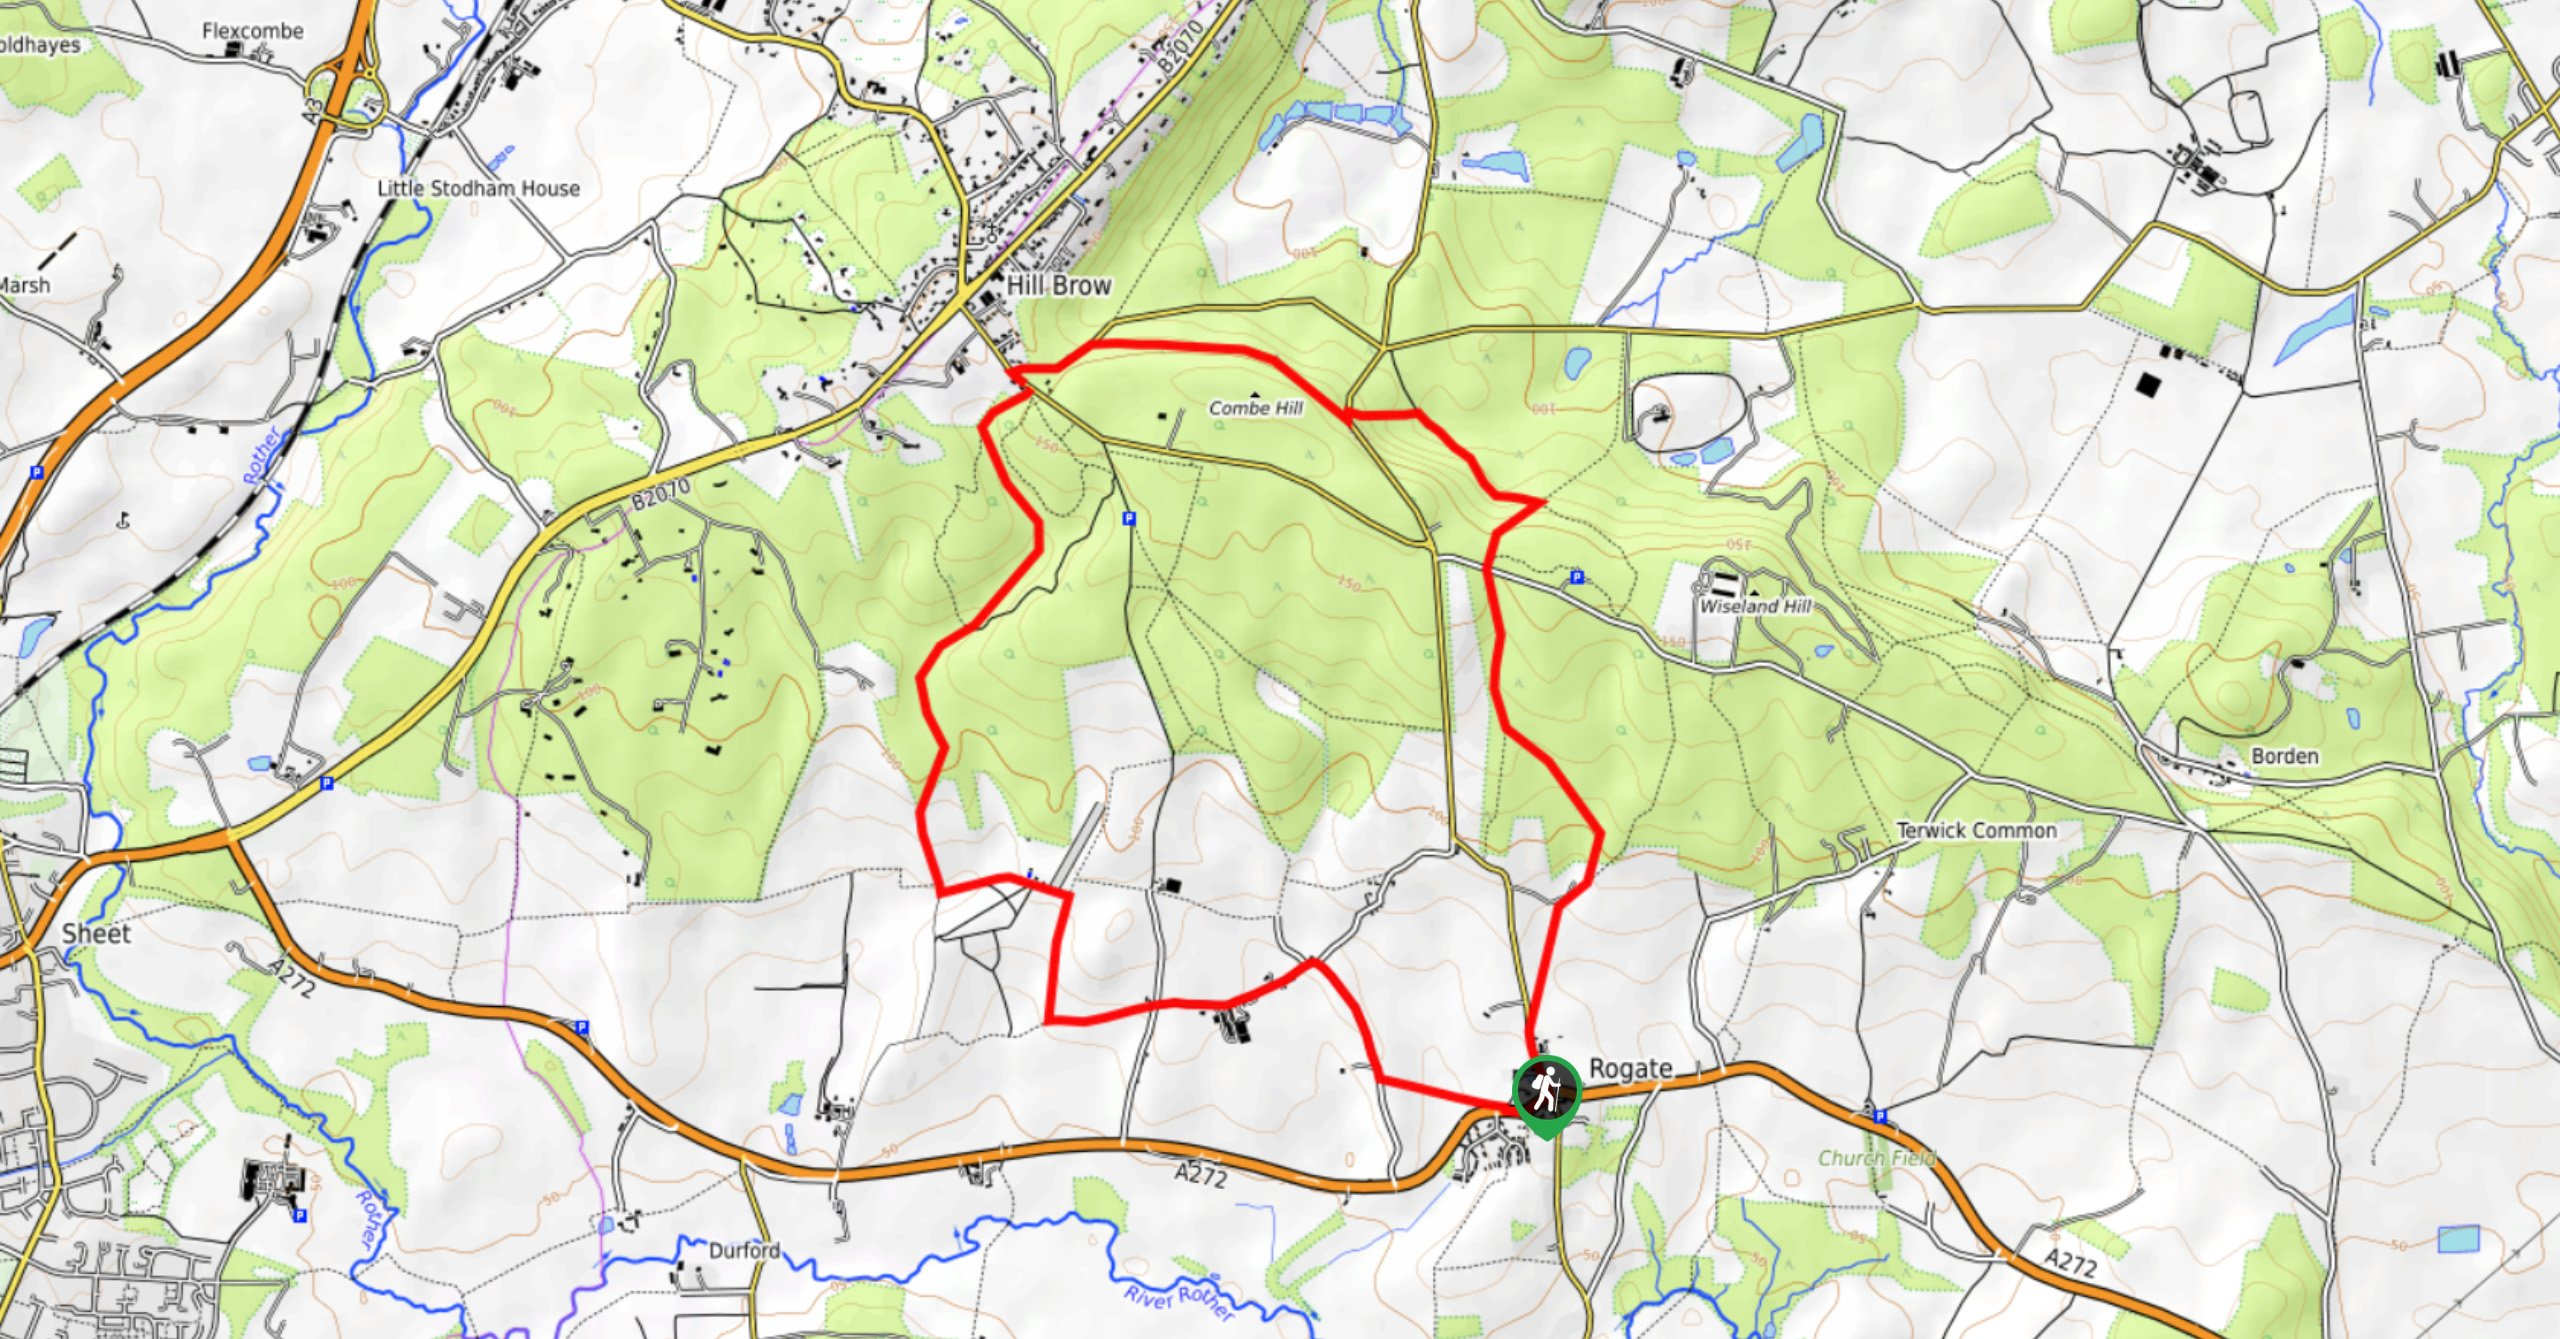 South Downs National Park-Durford Wood Walk-Map image